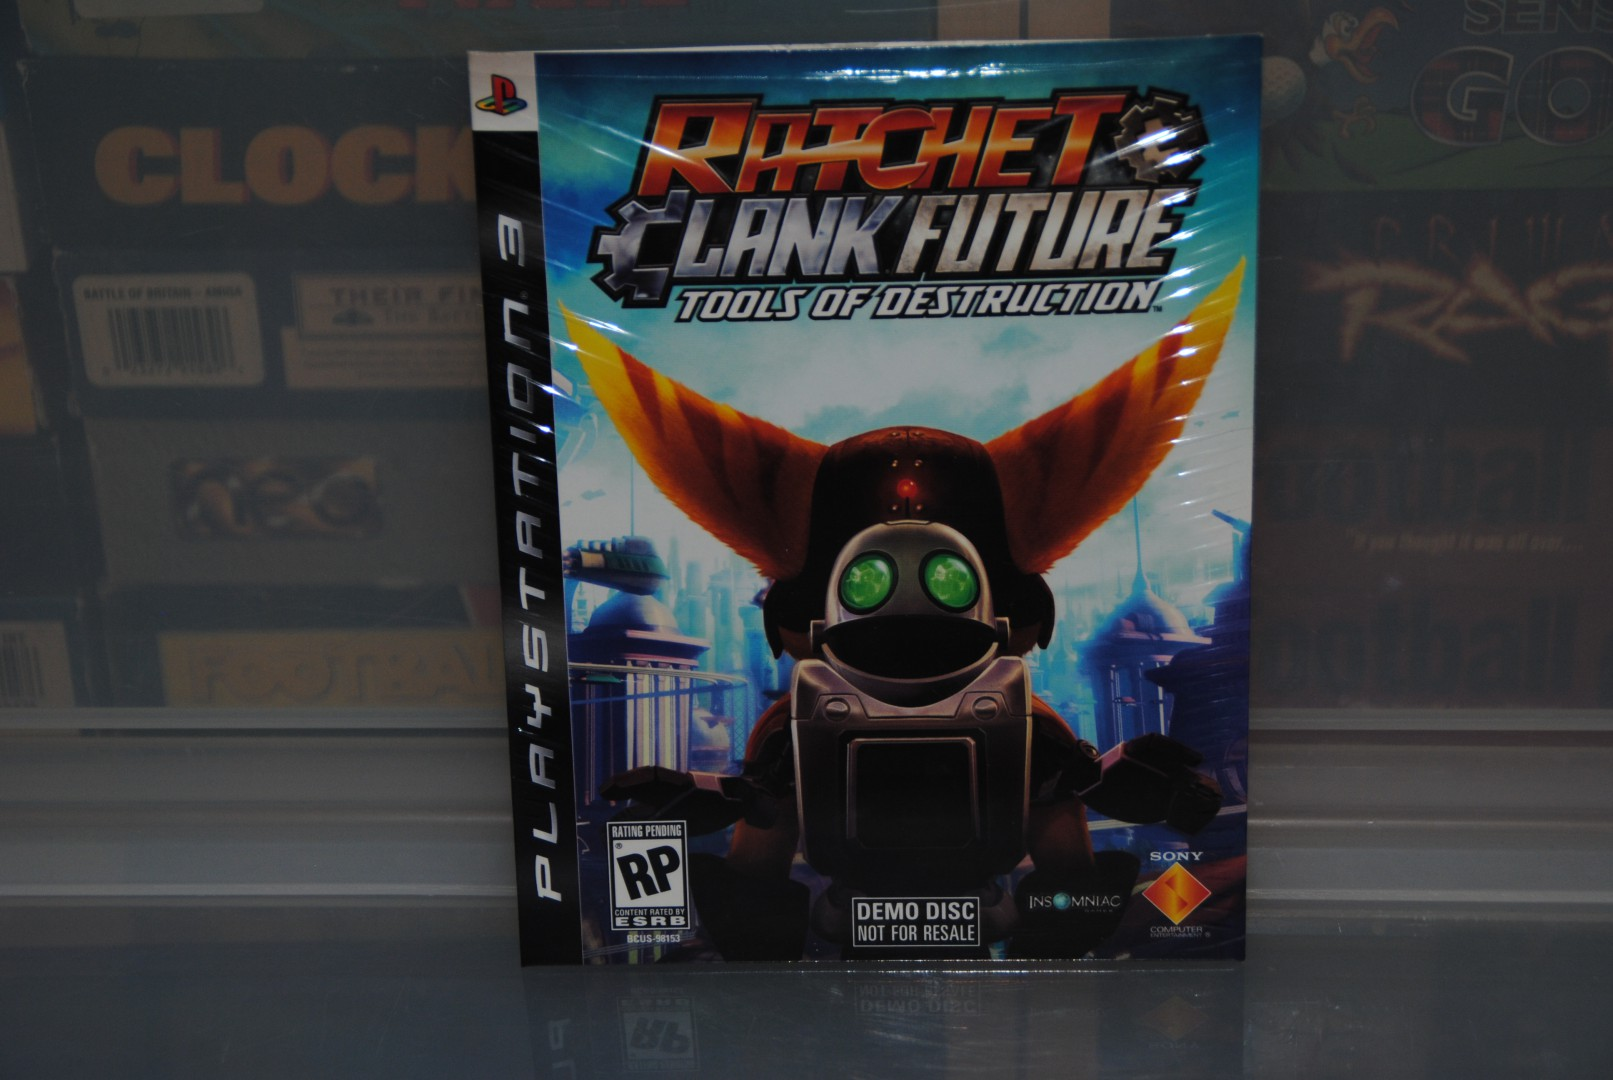 Ratchet And Clank Tools Of Destruction teaser Demo Disc.